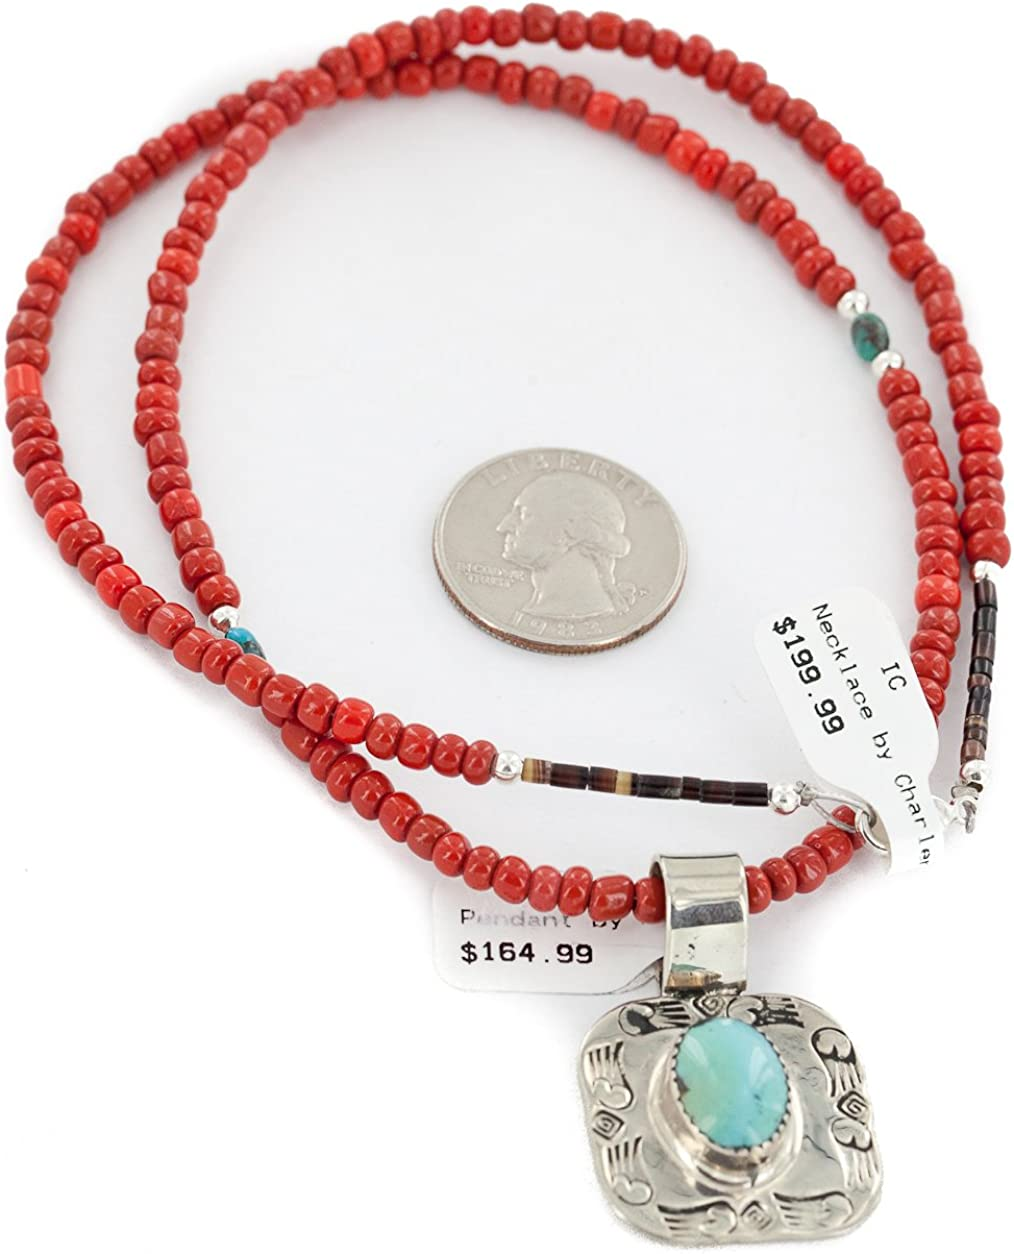 Native-Bay $365Tag Silver Nickel Certified Navajo Turquoise Coral Necklace 12811-3-16083-8 Made by Loma Siiva